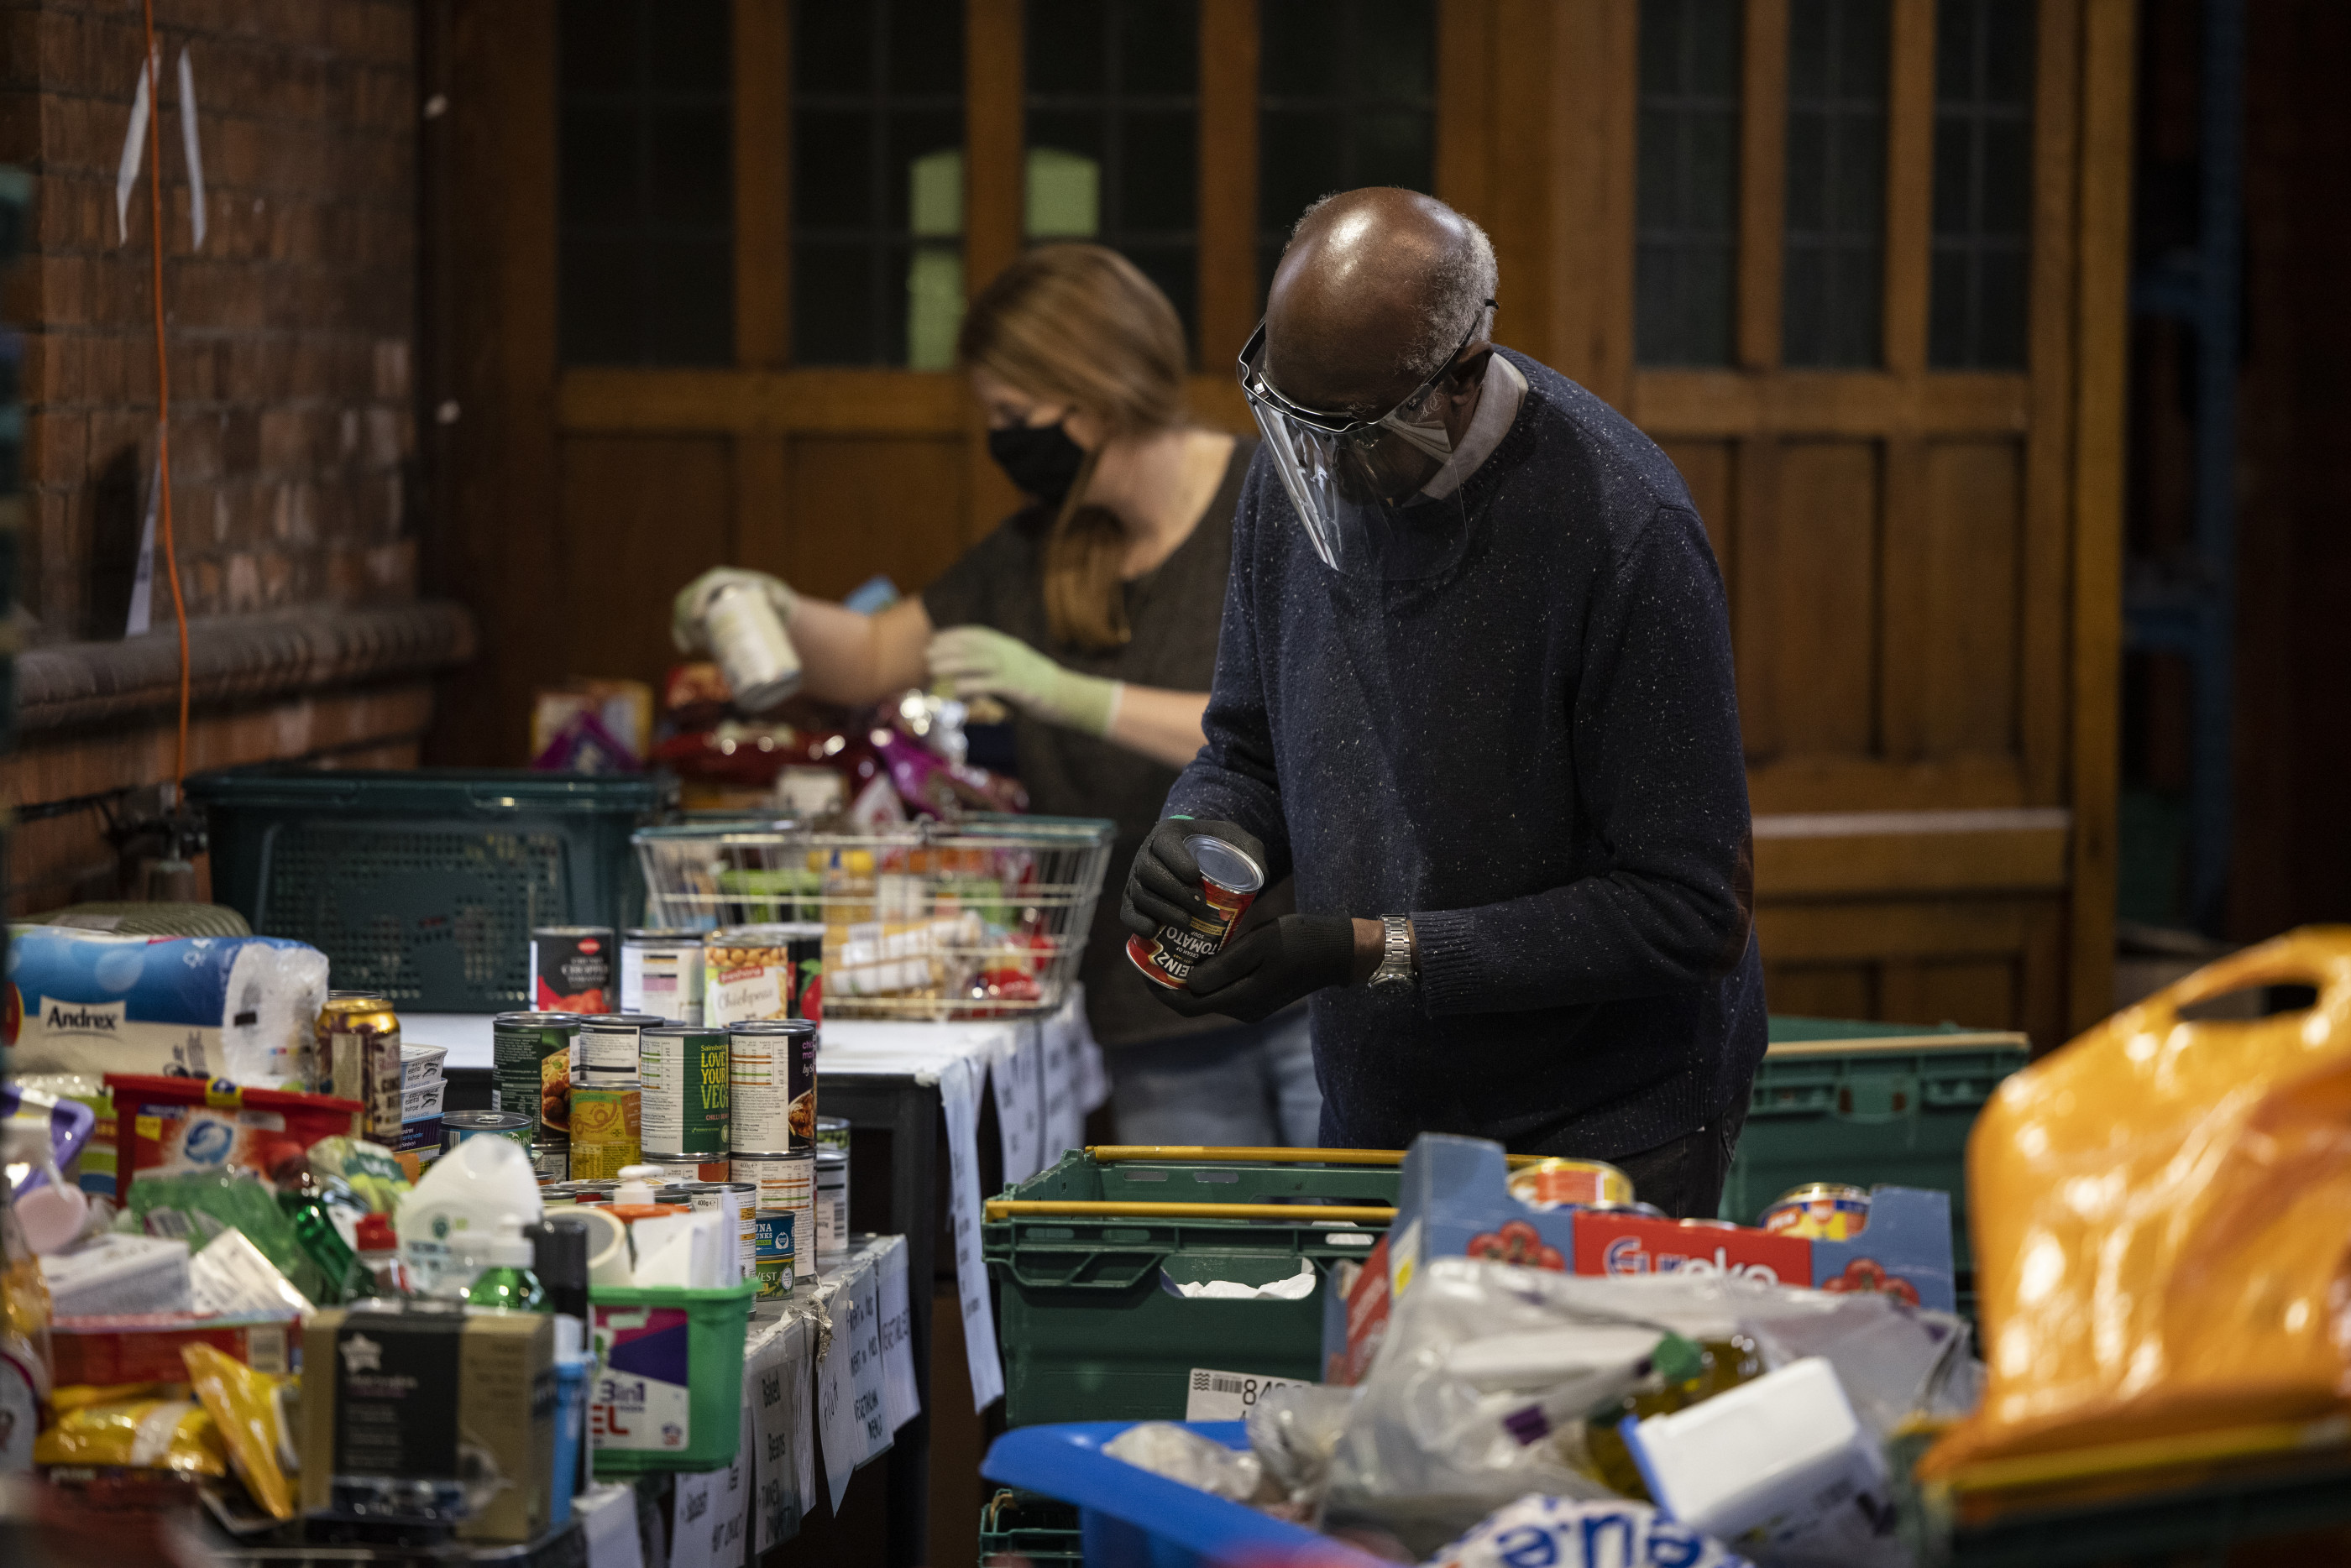 LONDON, ENGLAND - OCTOBER 27: Staff and volunteers pack and prepare food parcels at the South London warehouse and distribution centre at St Margaret's Church on October 27, 2020 in London, England. The South London warehouse is a distribution centre at St Margaret's Church, and part of the Lambeth network of foodbanks, a nationwide network supported by The Trussell Trust. Due to the ongoing Covid-19 crisis, the centre is operating a delivery service to those in need across South London. According to the Trussell Trust, there are around 14 million people are living in poverty in the UK, including 4.5 million children.  (Photo by Dan Kitwood/Getty Images)